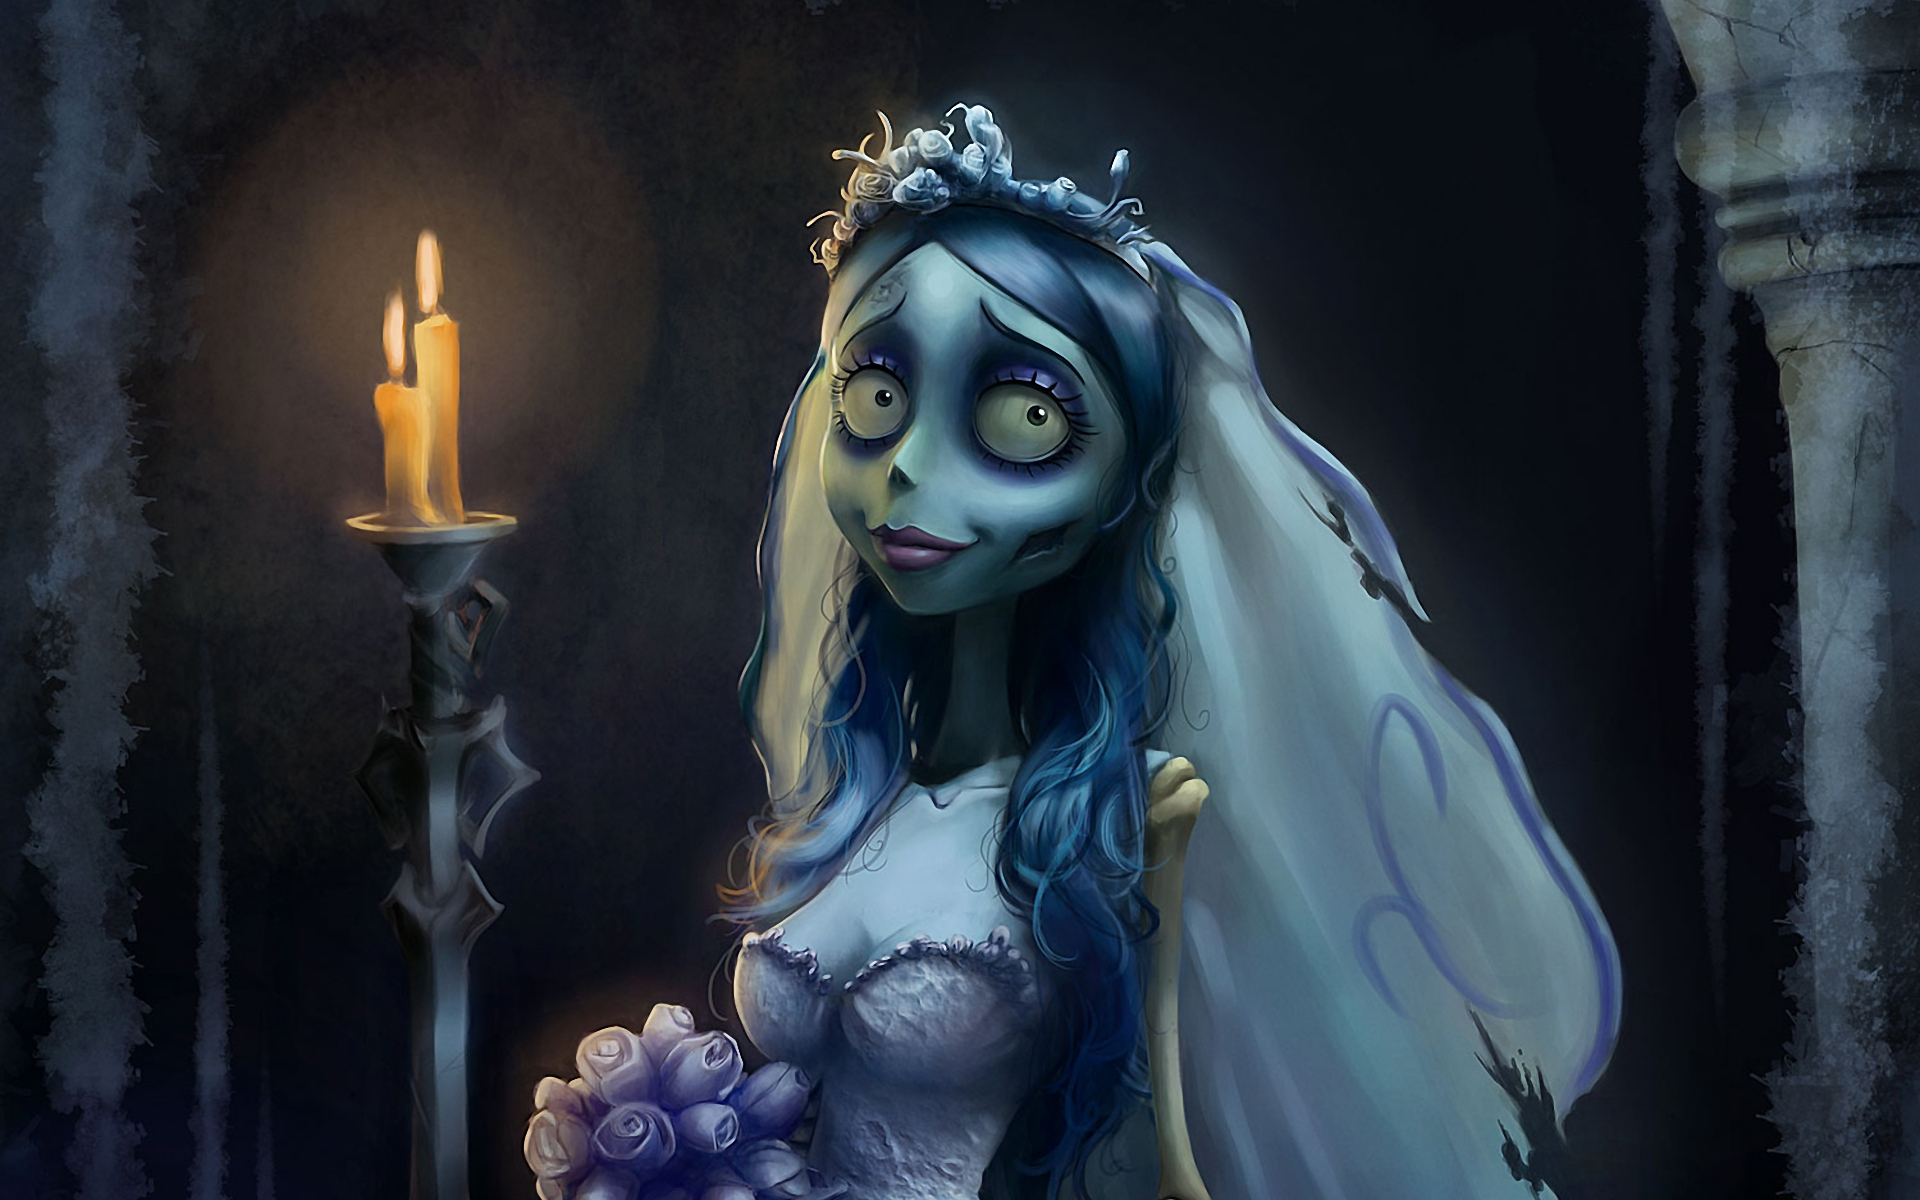 corpse bride movie wallpapers - photo #7